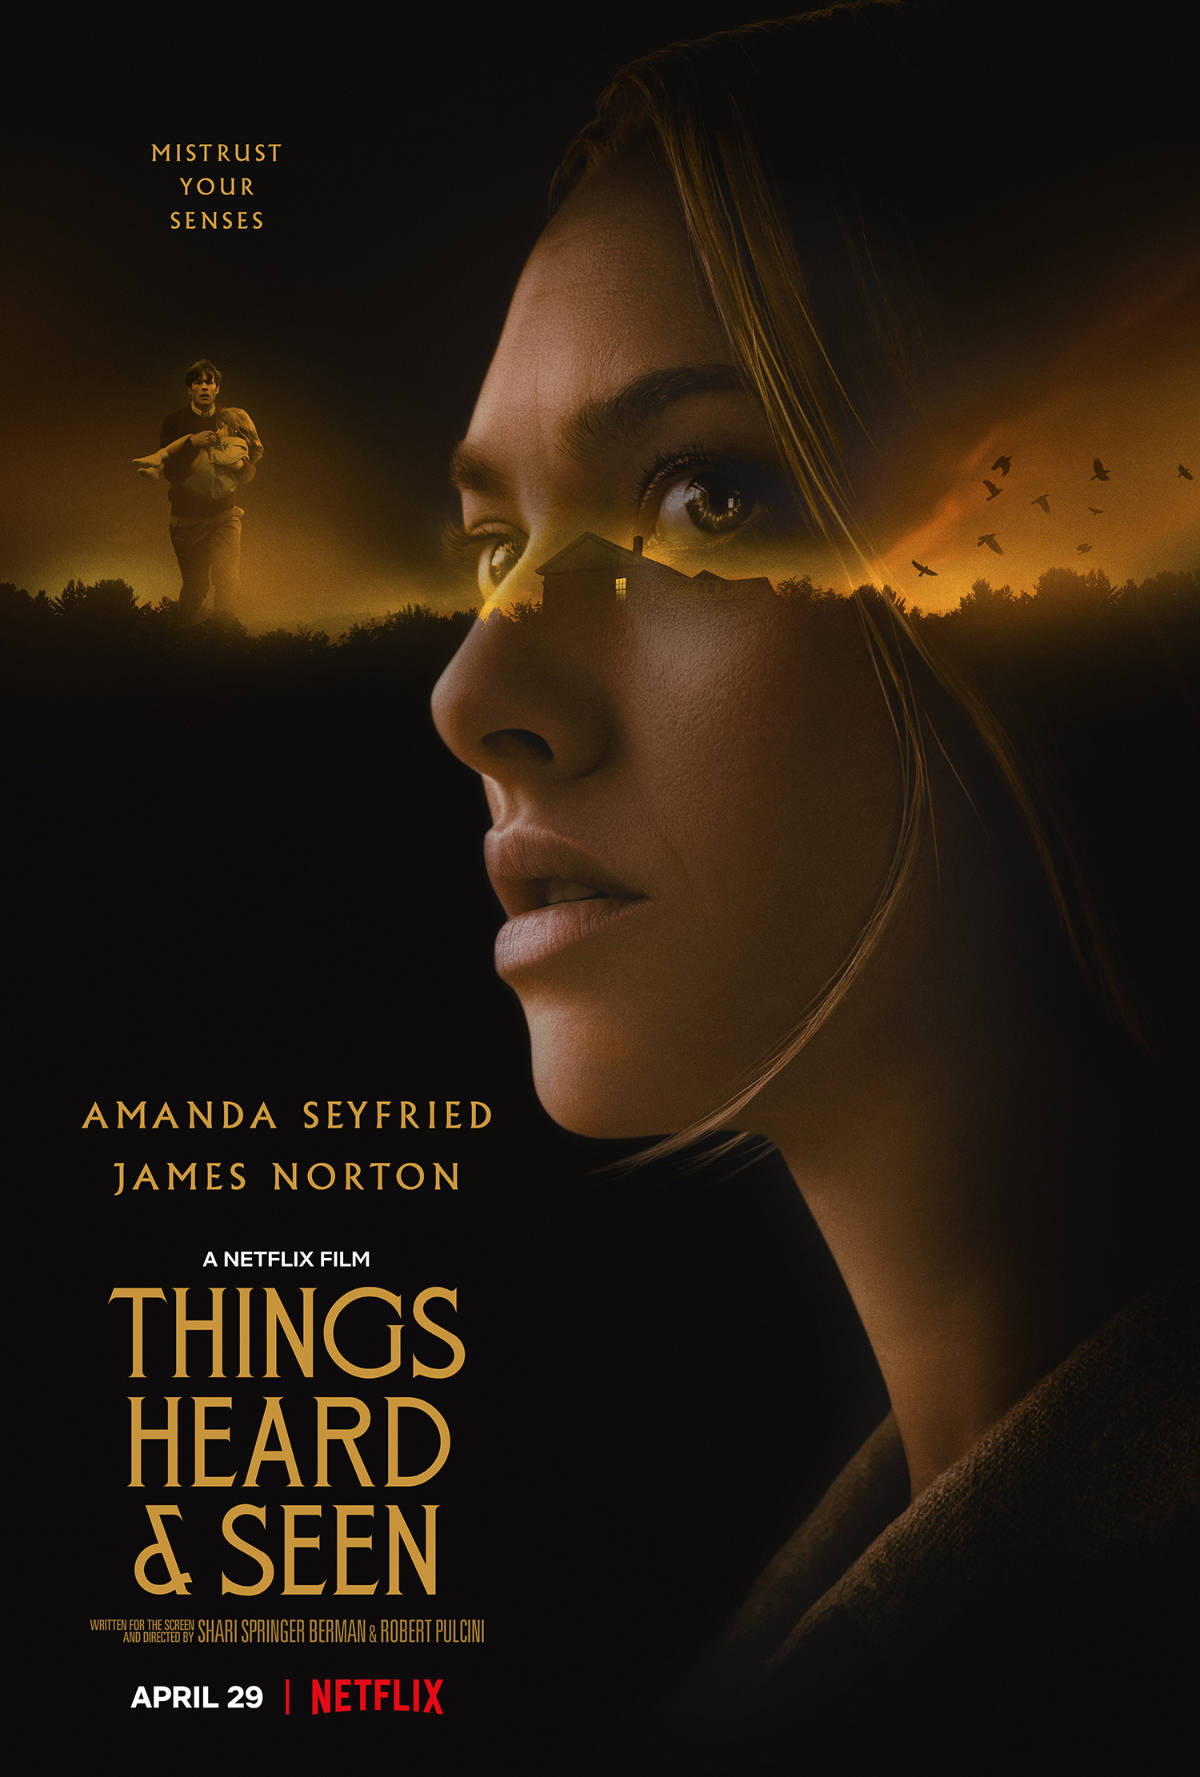 New Trailer and Key Art for Things Heard and Seen with Amanda Seyfried